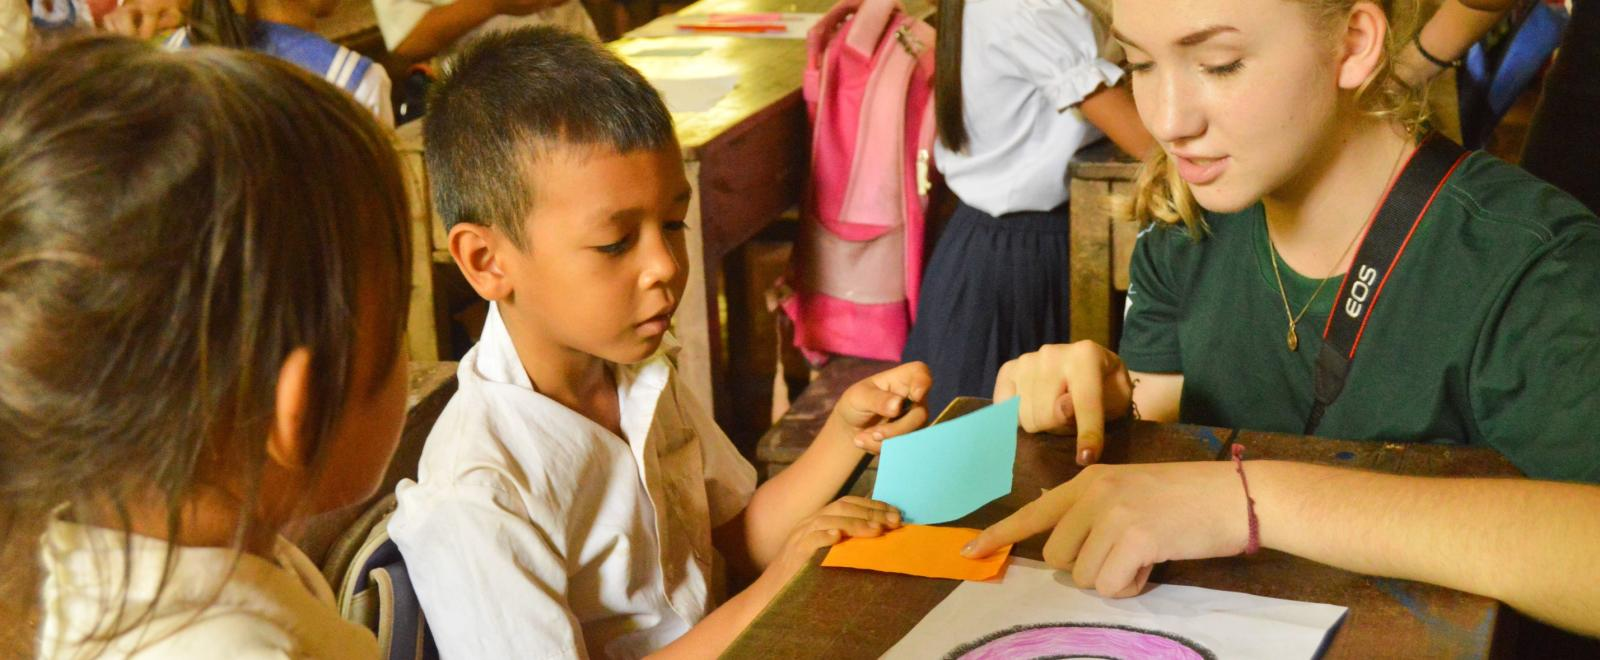 Childcare volunteer teaches a young boy different colours during school in Cambodia